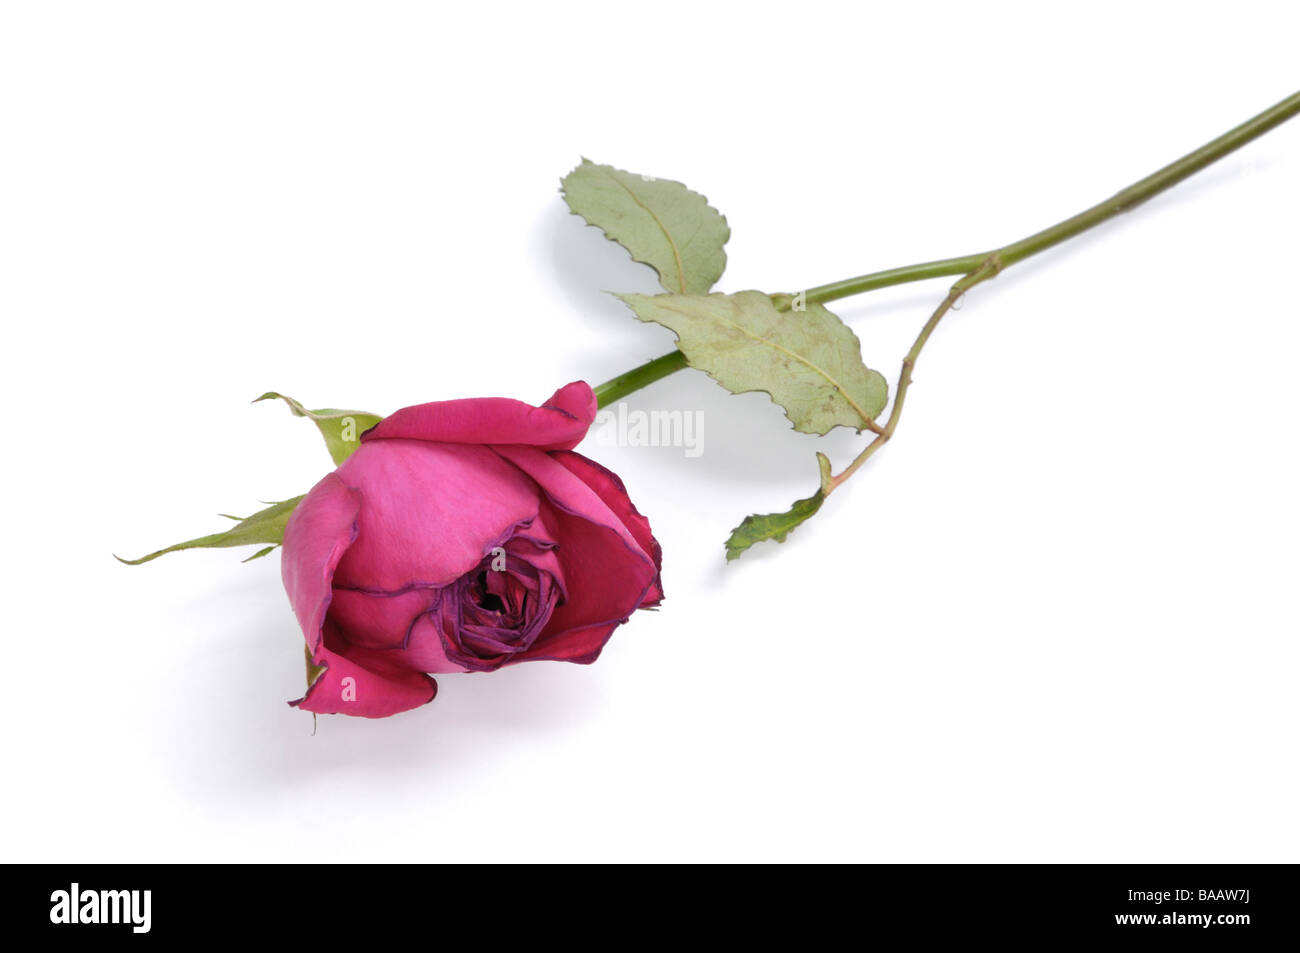 Red withered rose isolated on white background - Stock Image